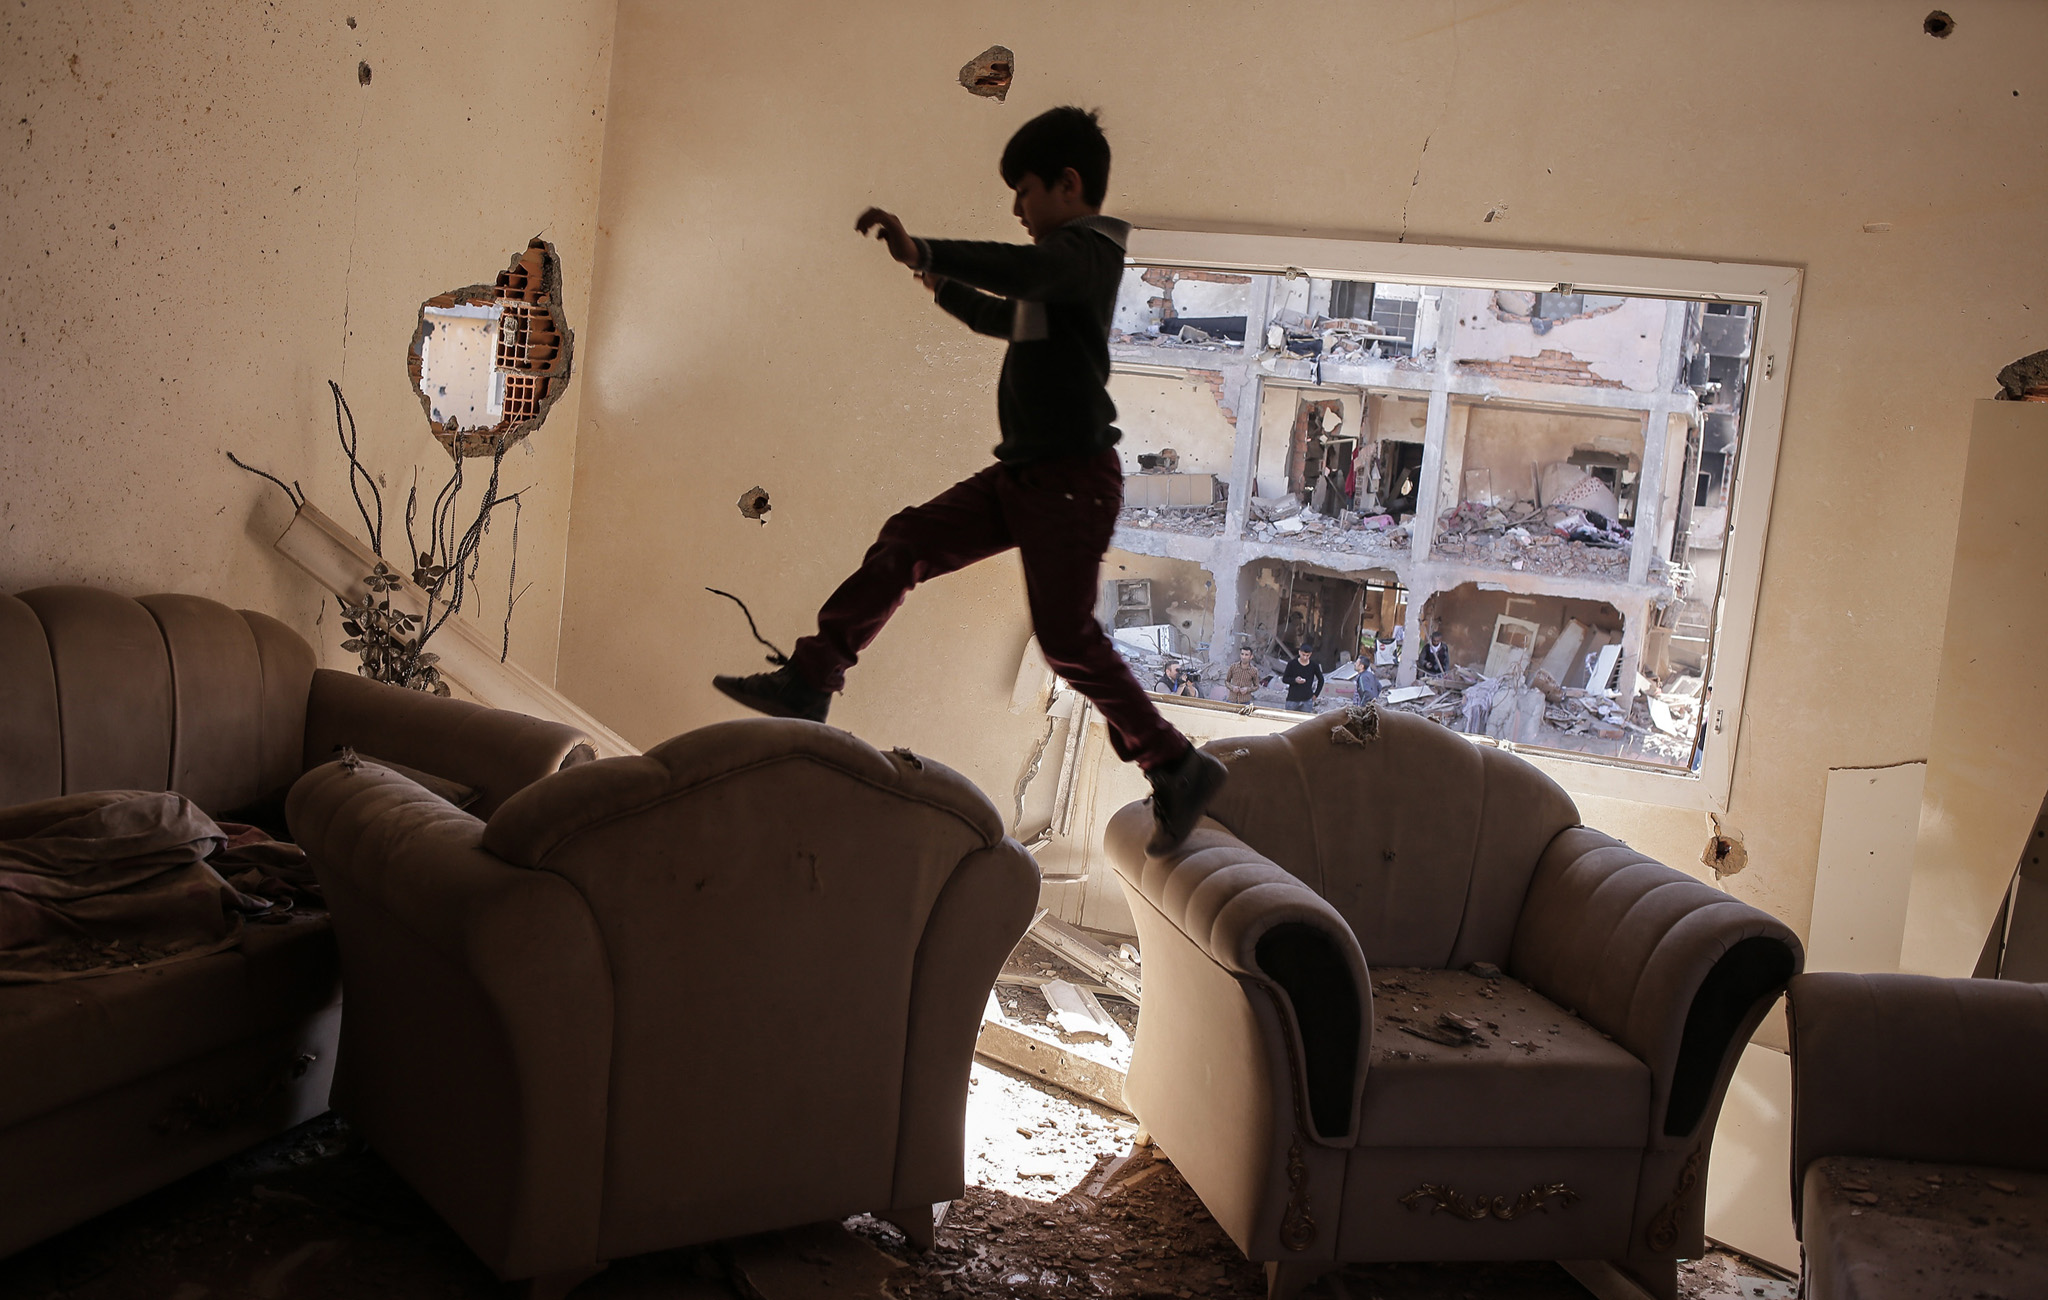 Residents Return To Turkish Town Of Cizre After Curfew...CIZRE, TURKEY - MARCH 02: A boy jumps between sofas in his ruined house on March 2, 2016 in Cizre, Turkey. Turkish authorities scaled down a 24-hour curfew imposed on the mainly Kurdish town of Cizre in southeast Turkey, nearly three weeks after declaring the successful conclusion of military operations there. The curfew was lifted at 5 a.m., allowing residents to return to their conflict-stricken neighborhoods for the first time since December 14. But it will remain in effect between 7:30 p.m. and 5 a.m. Residents began trickling back at first light, their vehicles loaded with personal belongings and, in some cases, children. (Photo by Cagdas Erdogan/Getty Images)